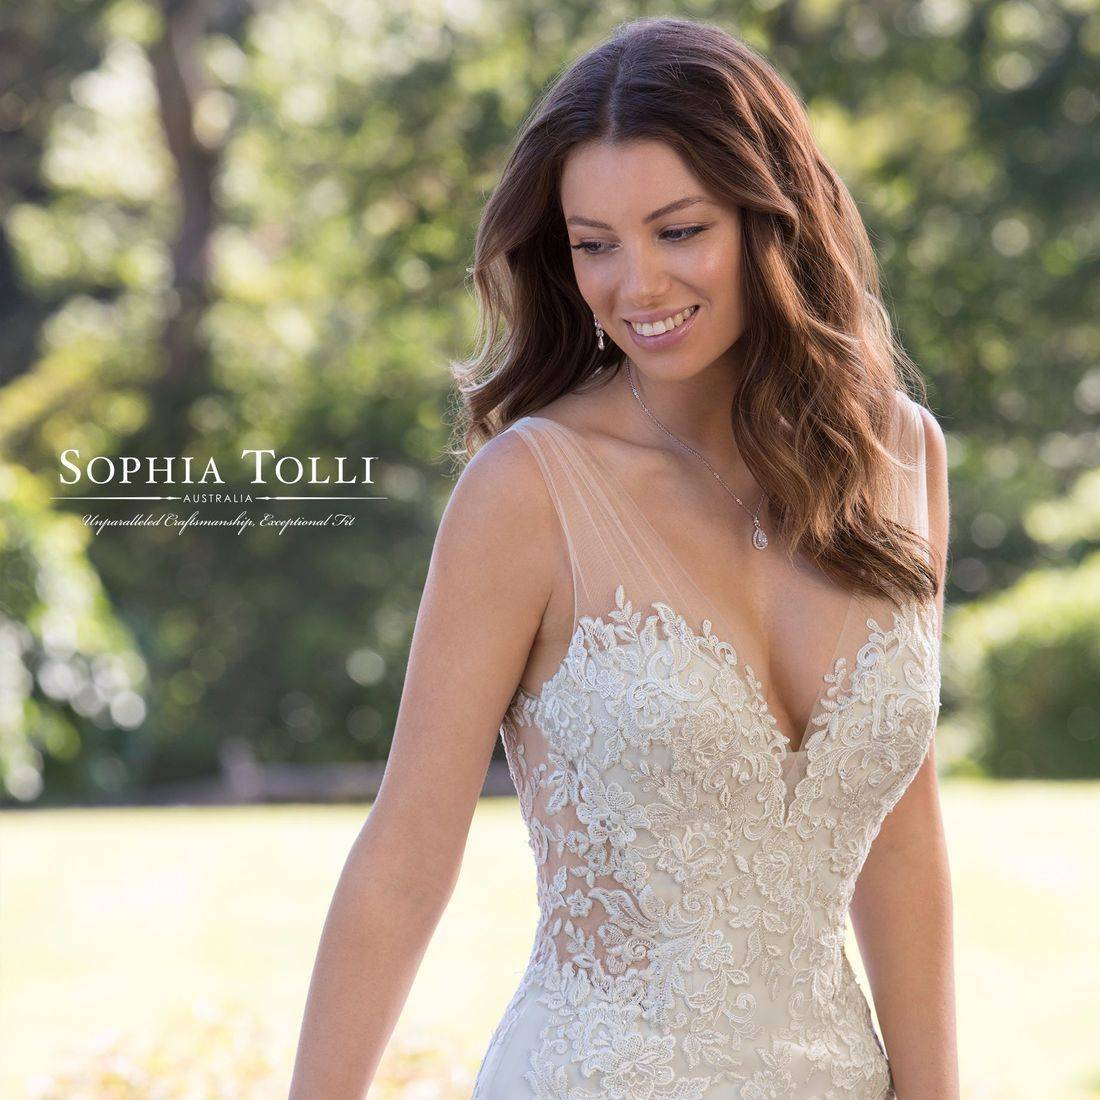 sophia tolli, sophia tolli wedding dress, trumpet wedding dress, sweetheart neck, sparkle, fitted wedding dress, chapel train, lace, dipped neck,